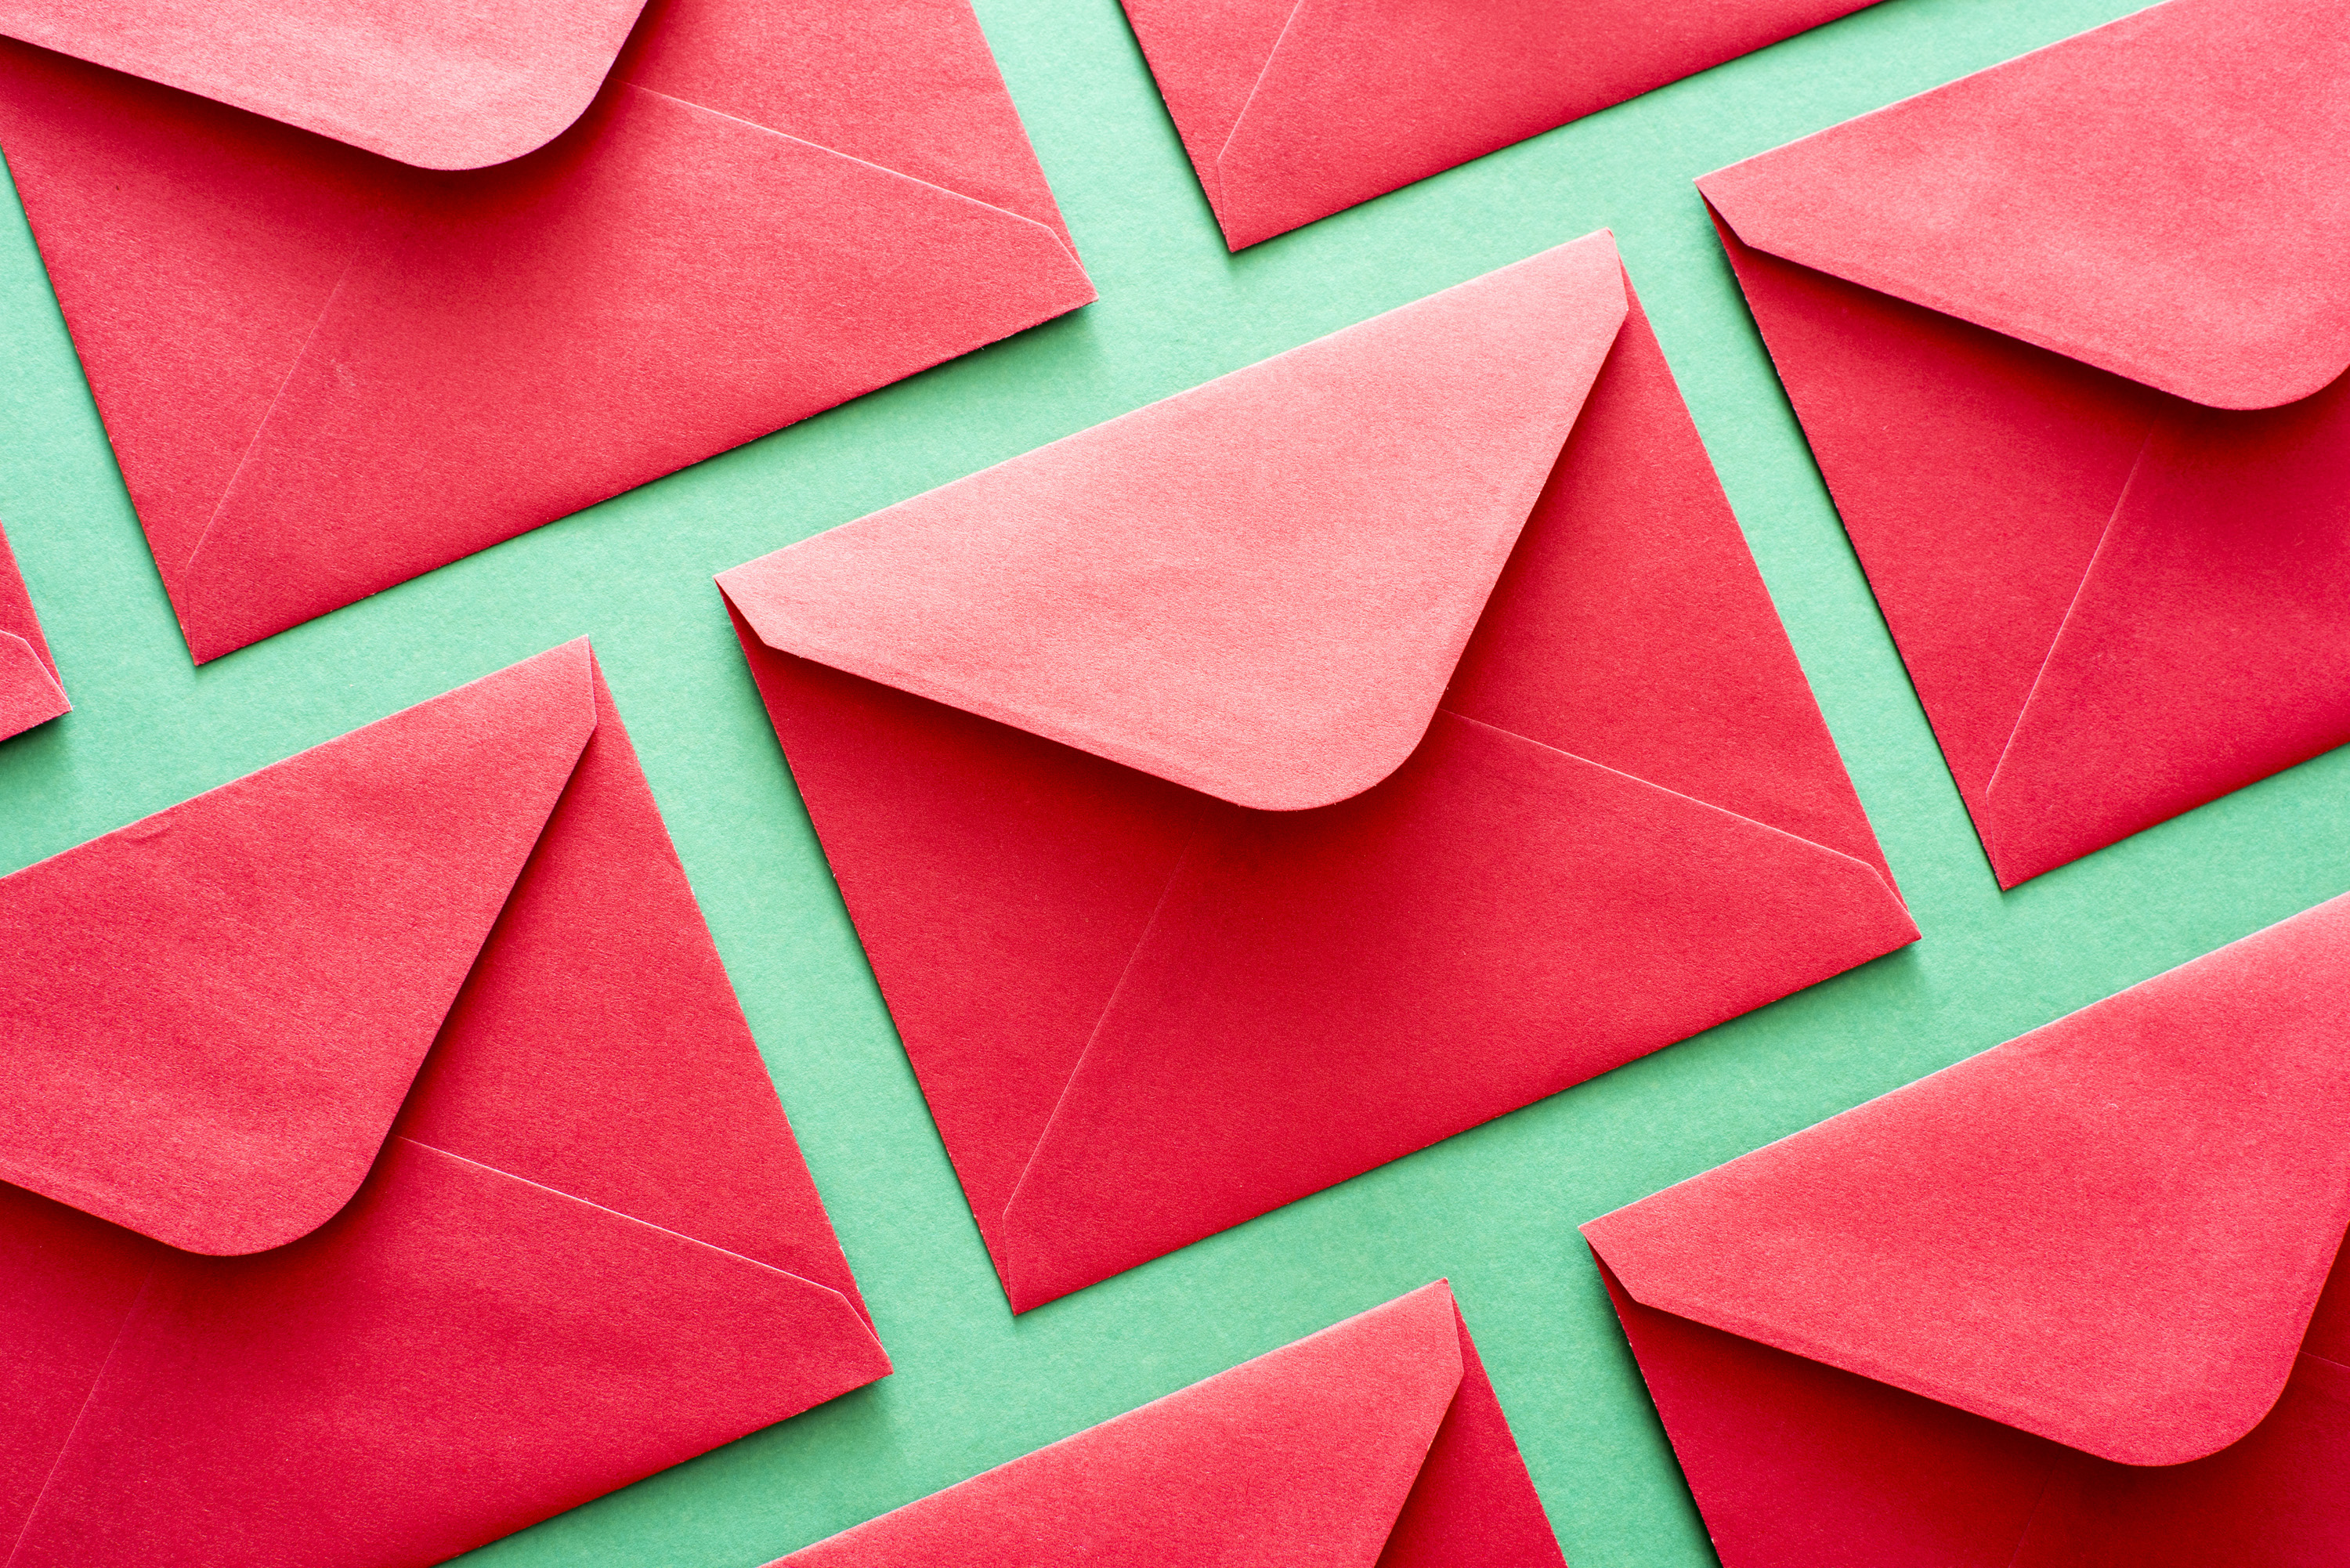 Background pattern of festive red envelopes arranged neatly in rows on a green background for your seasonal Christmas or New Year message